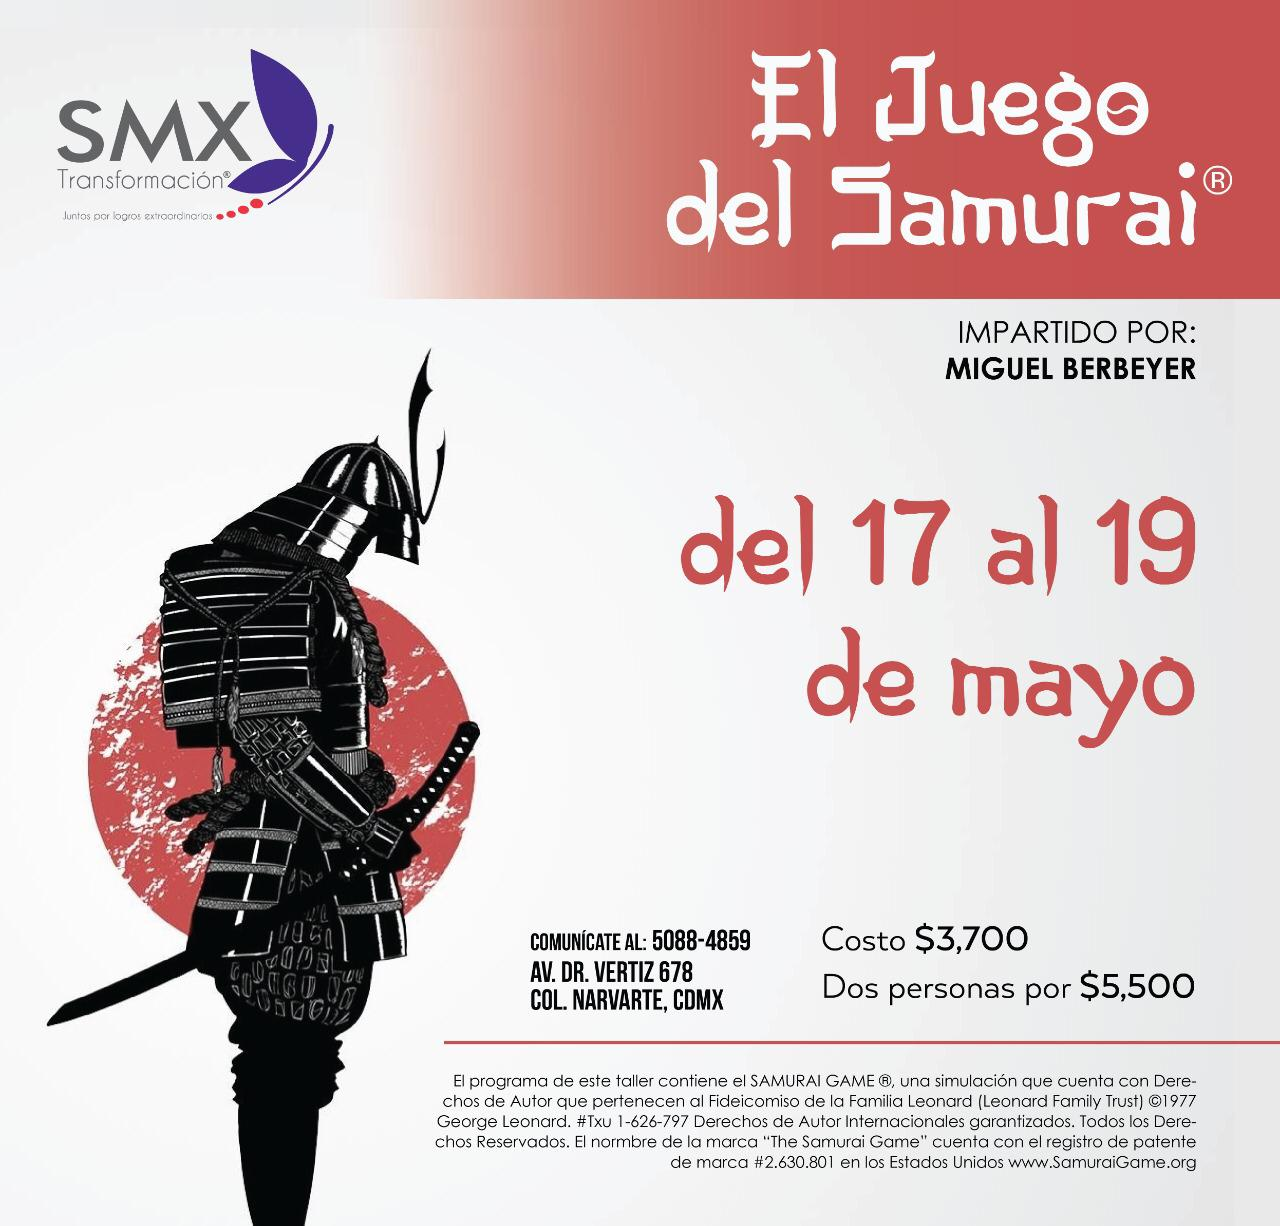 The Samurai Game ® SMX Transformación CDMX